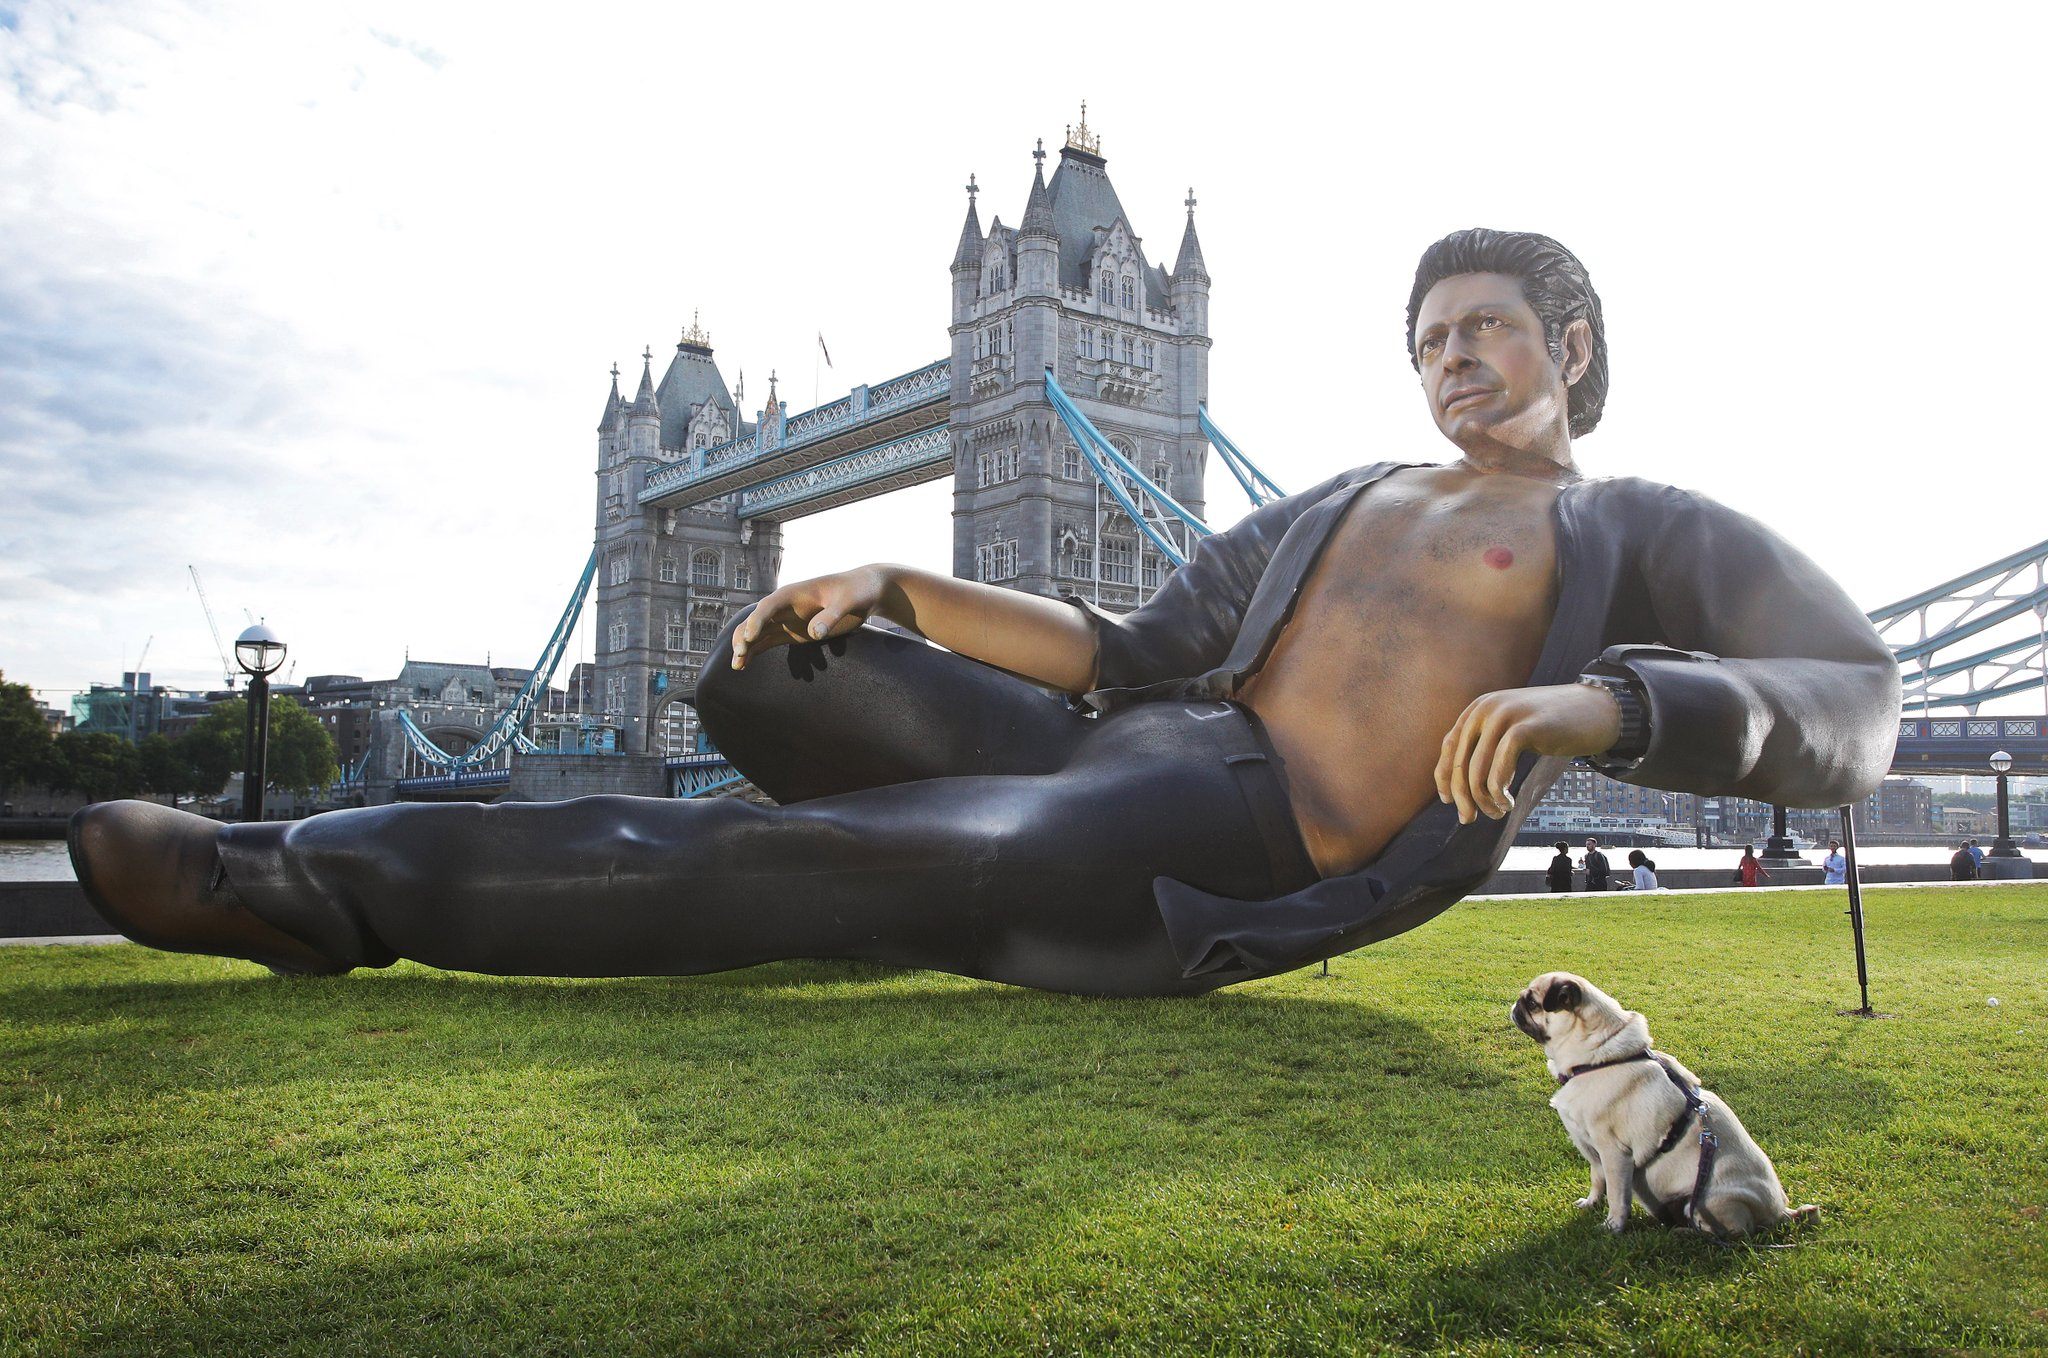 This magnificent, shirtless Jeff Goldblum statue has popped up in London. (Photo courtesy: NowTV/FeverPr)